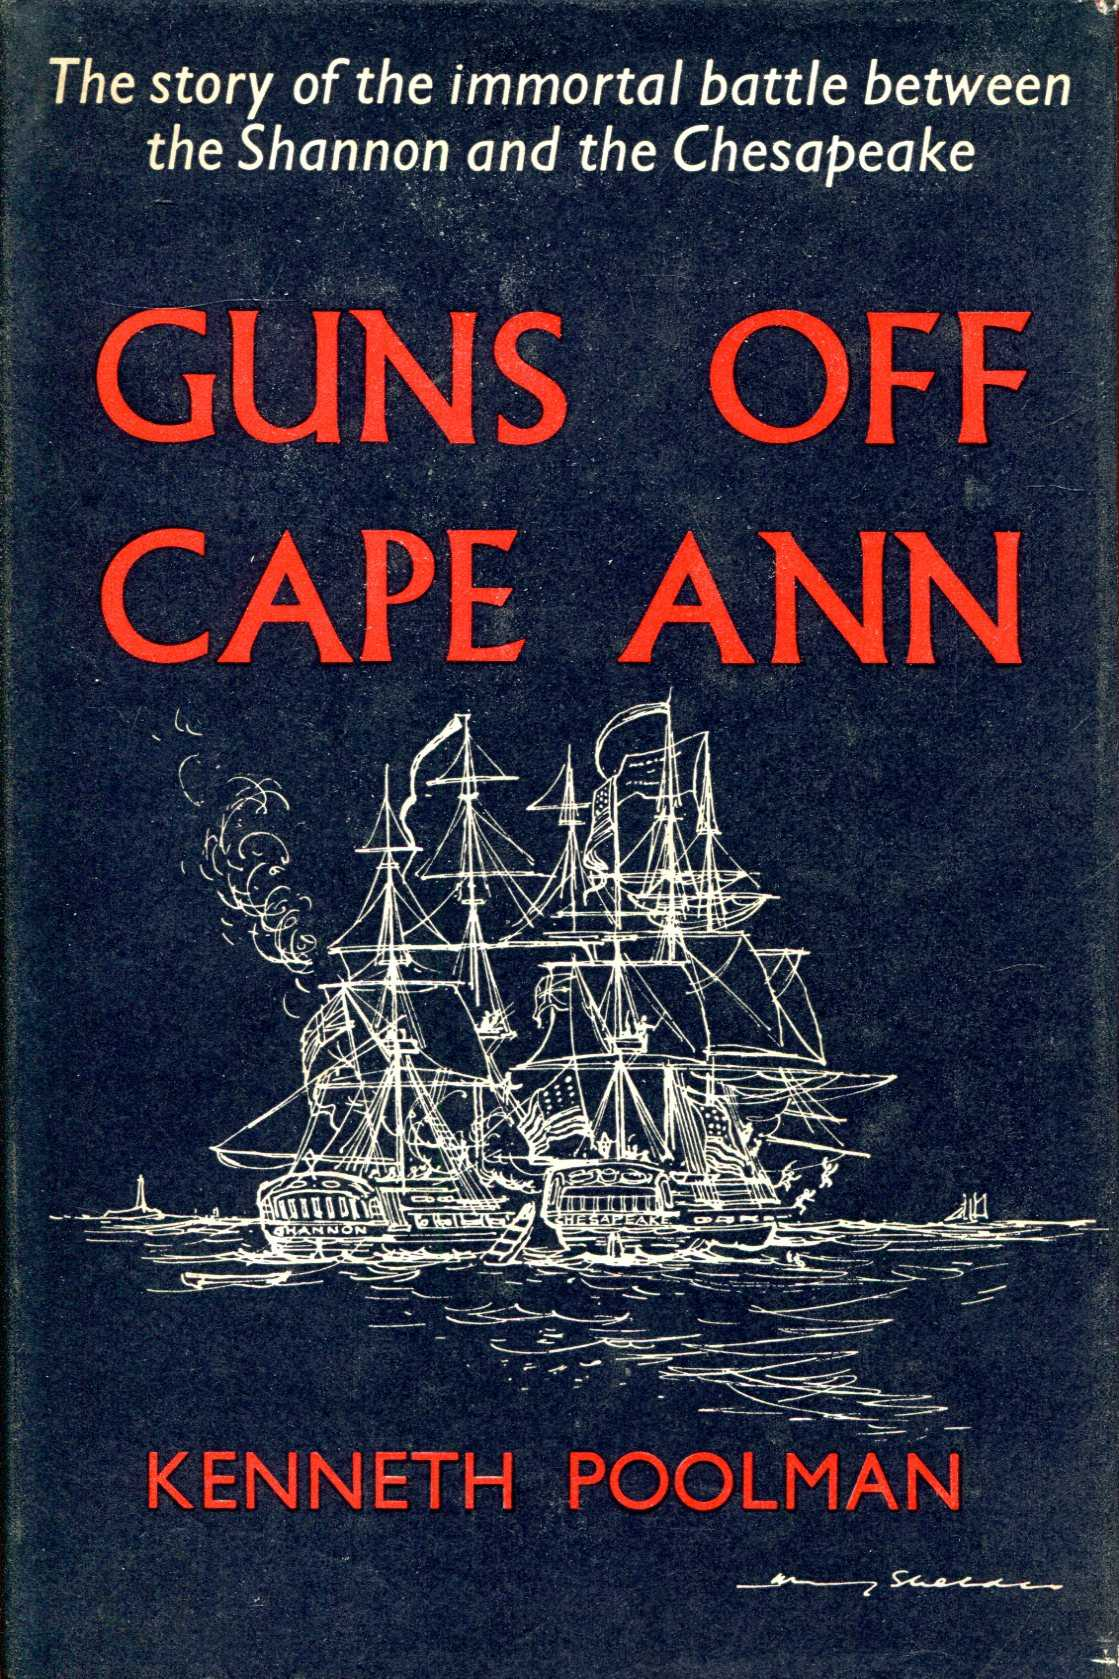 Image for Guns of Cape Ann, the story of the Shannon and the Chesapeake